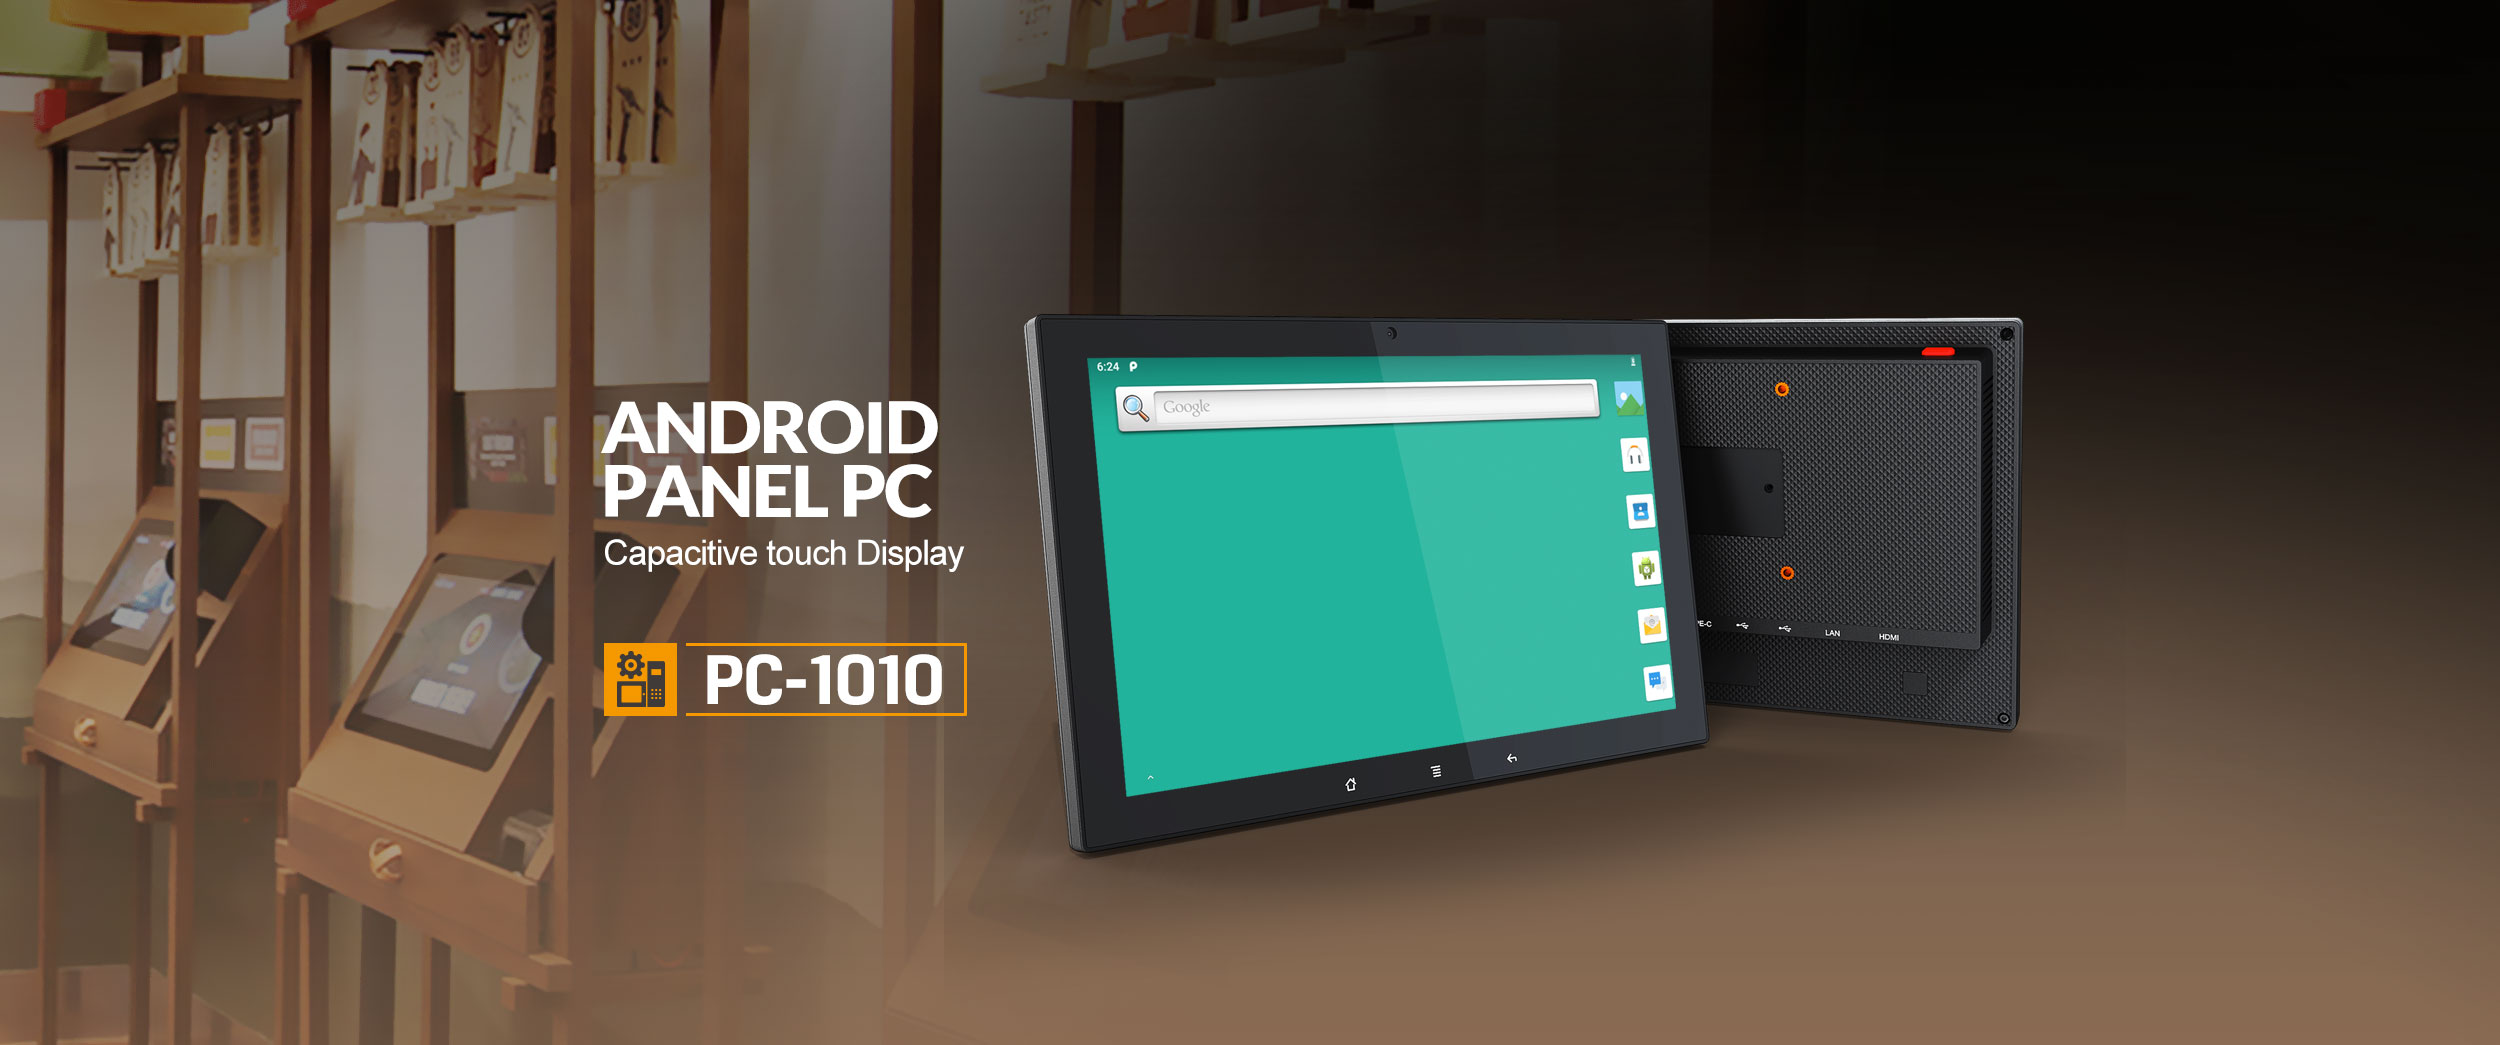 10.1″ ANDROID PANEL PC